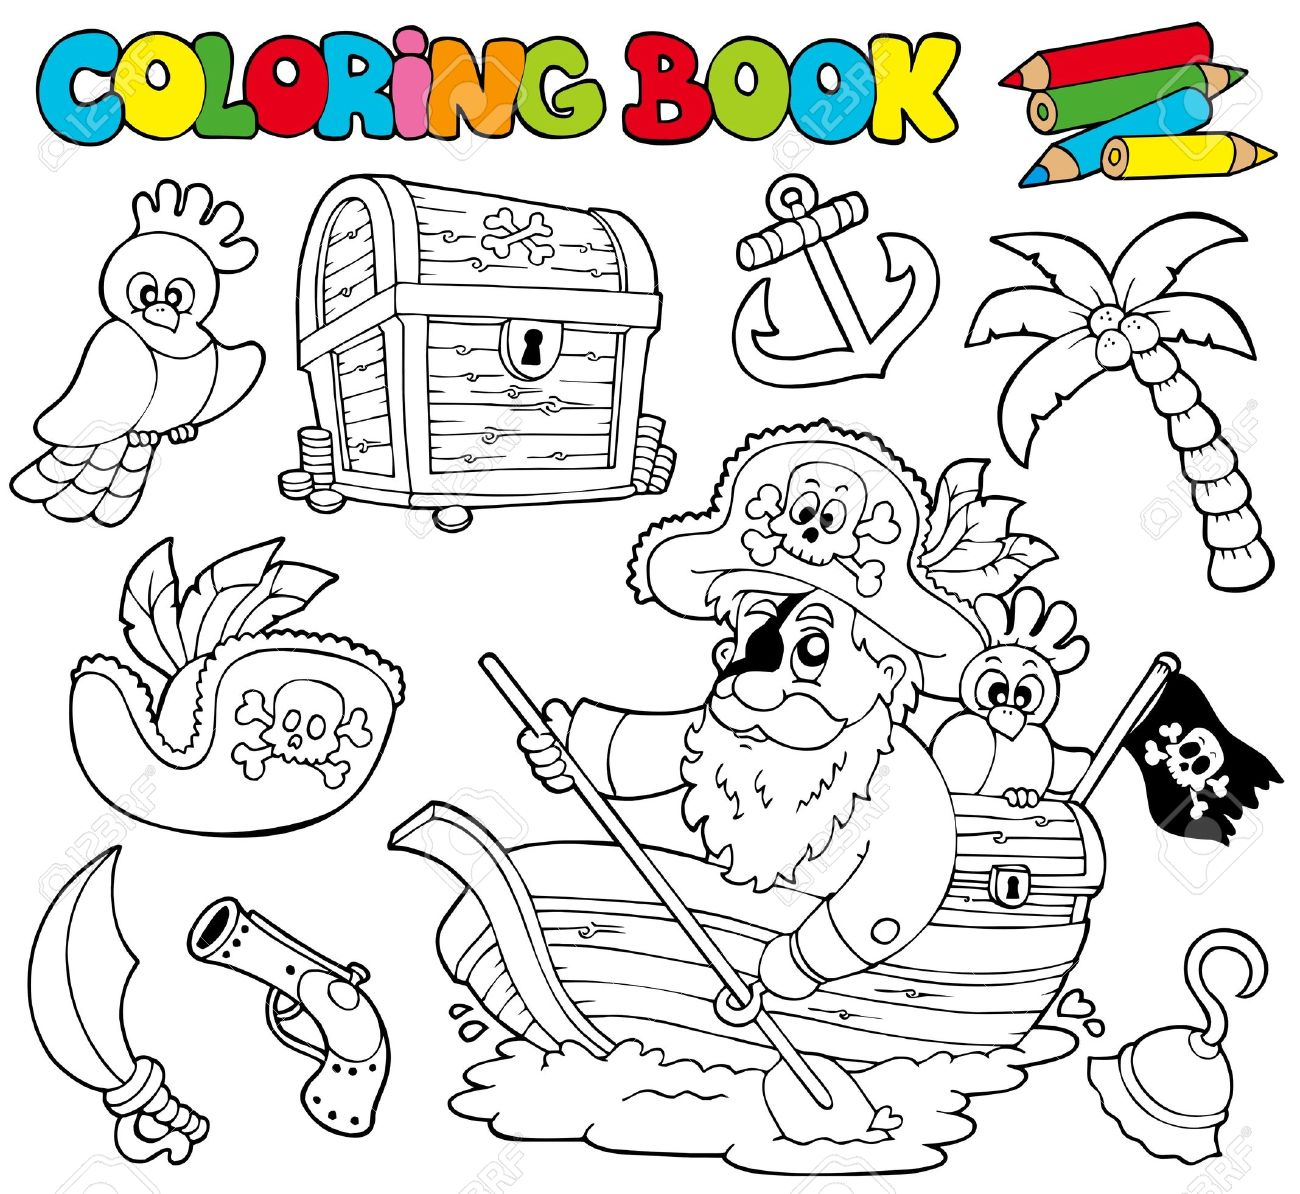 Coloring Book With Pirates - Illustration. Royalty Free Cliparts ...